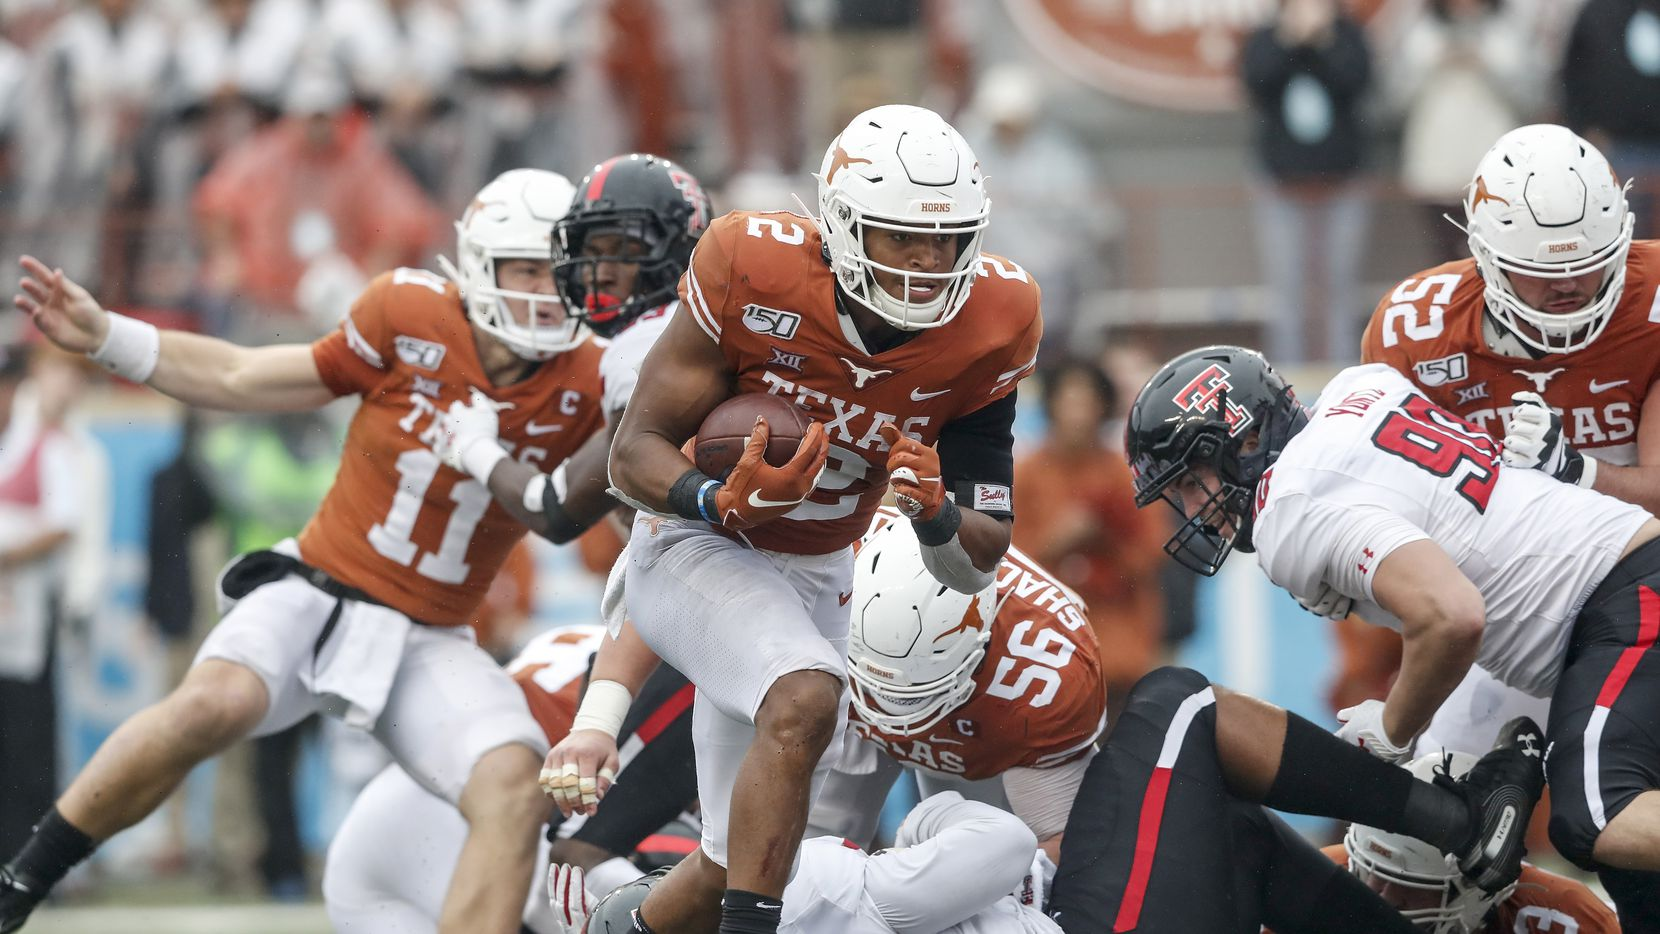 AUSTIN, TX - NOVEMBER 29:  Roschon Johnson #2 of the Texas Longhorns rushes for a touchdown in the fourth quarter against the Texas Tech Red Raiders at Darrell K Royal-Texas Memorial Stadium on November 29, 2019 in Austin, Texas.